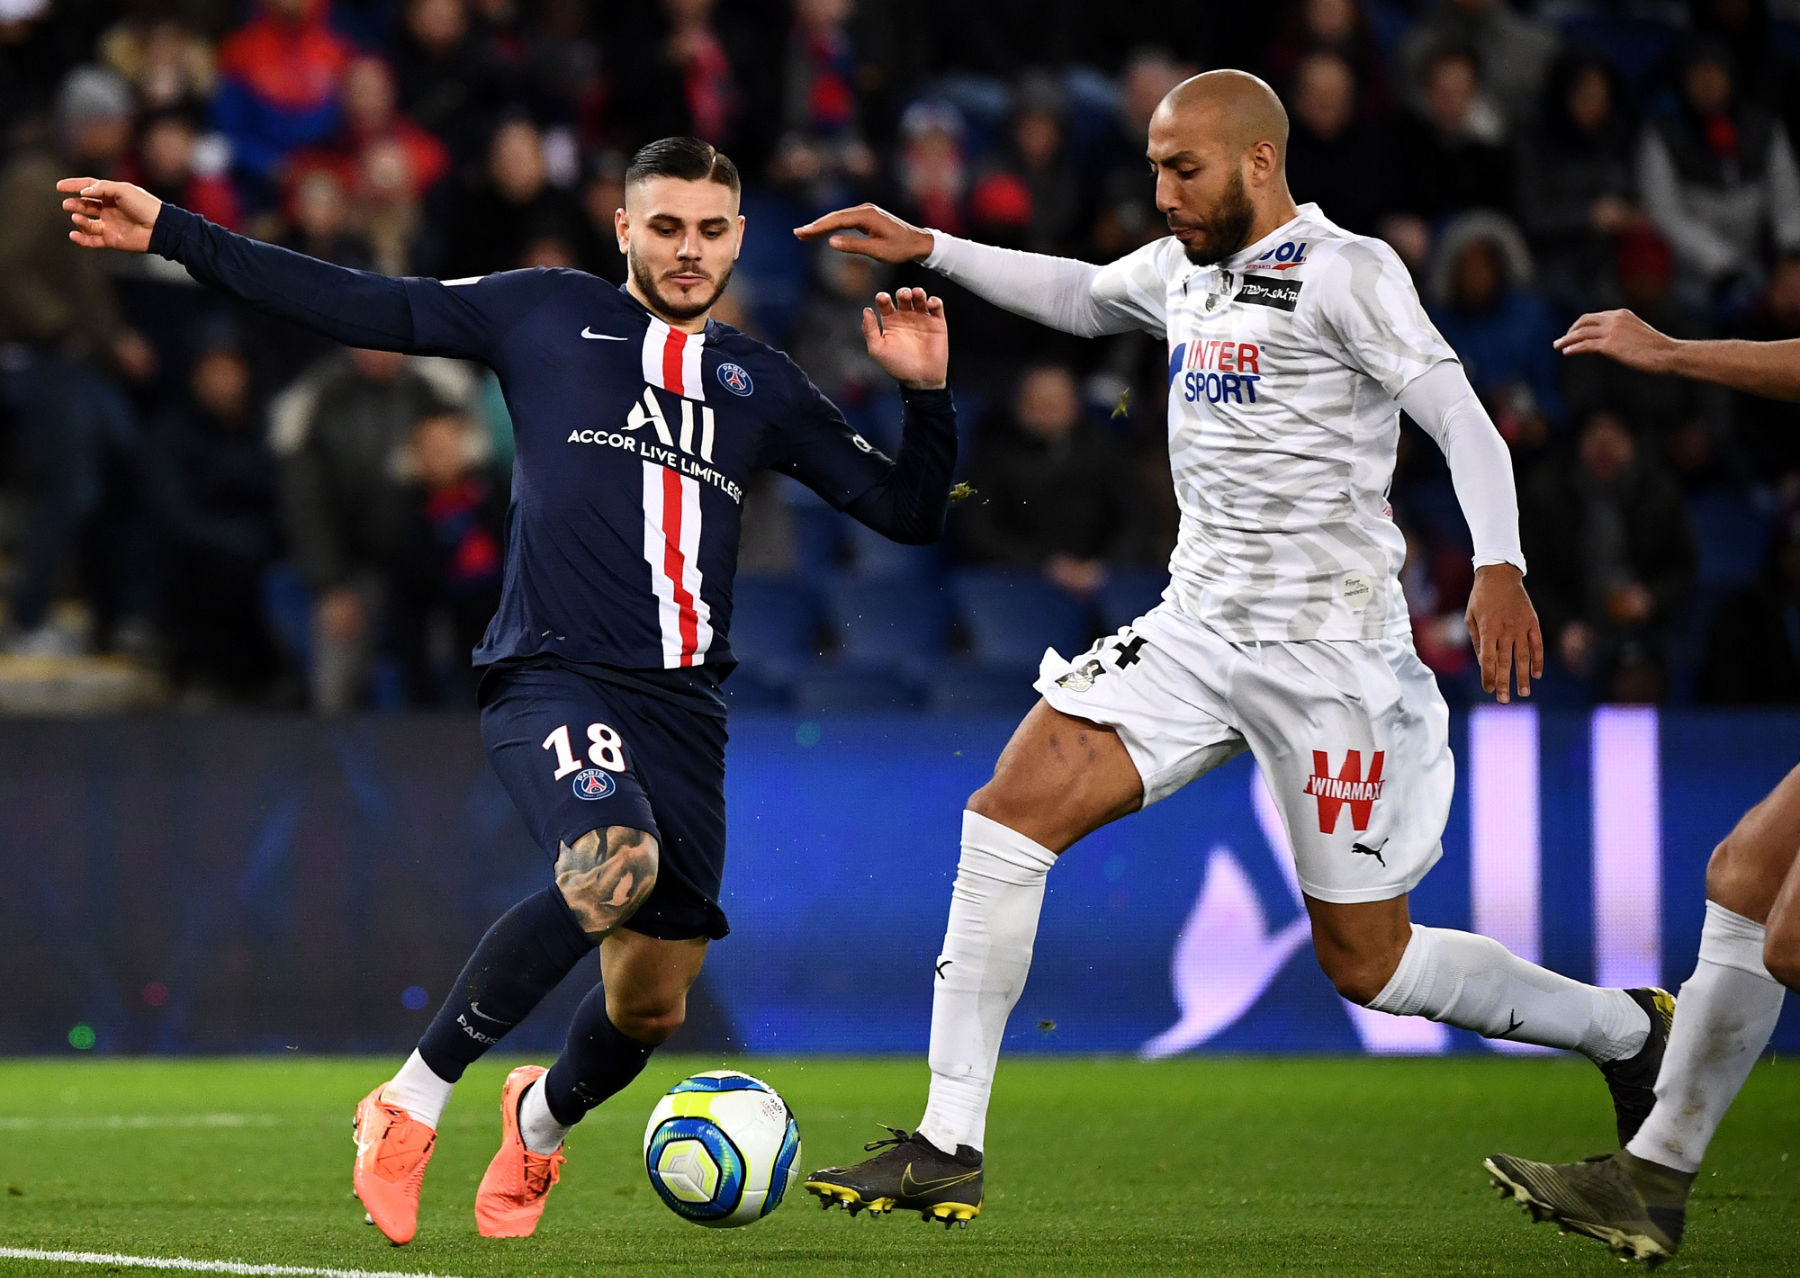 Mauro Icardi Discusses Why He Made His Stay With Psg Permanent